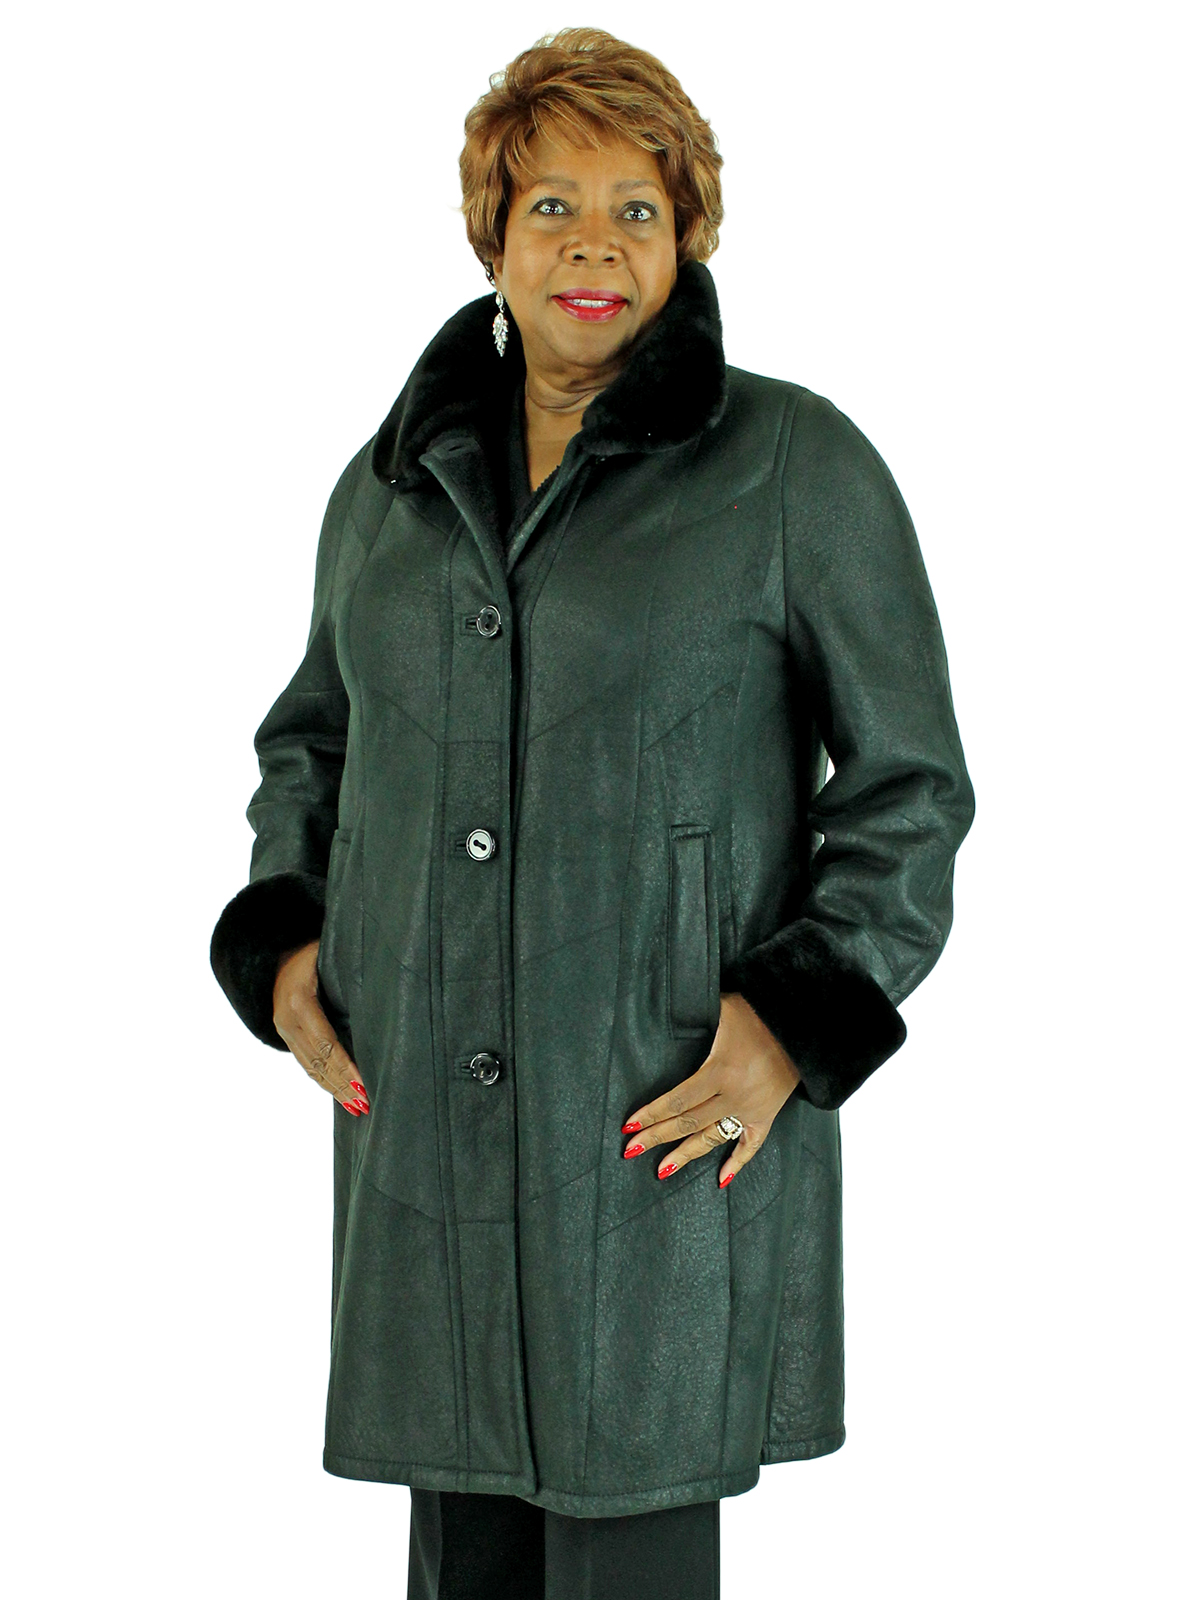 Woman's Black Christ Shearling Lamb 3/4 Coat with Sheared Nutria Fur Collar and Cuffs